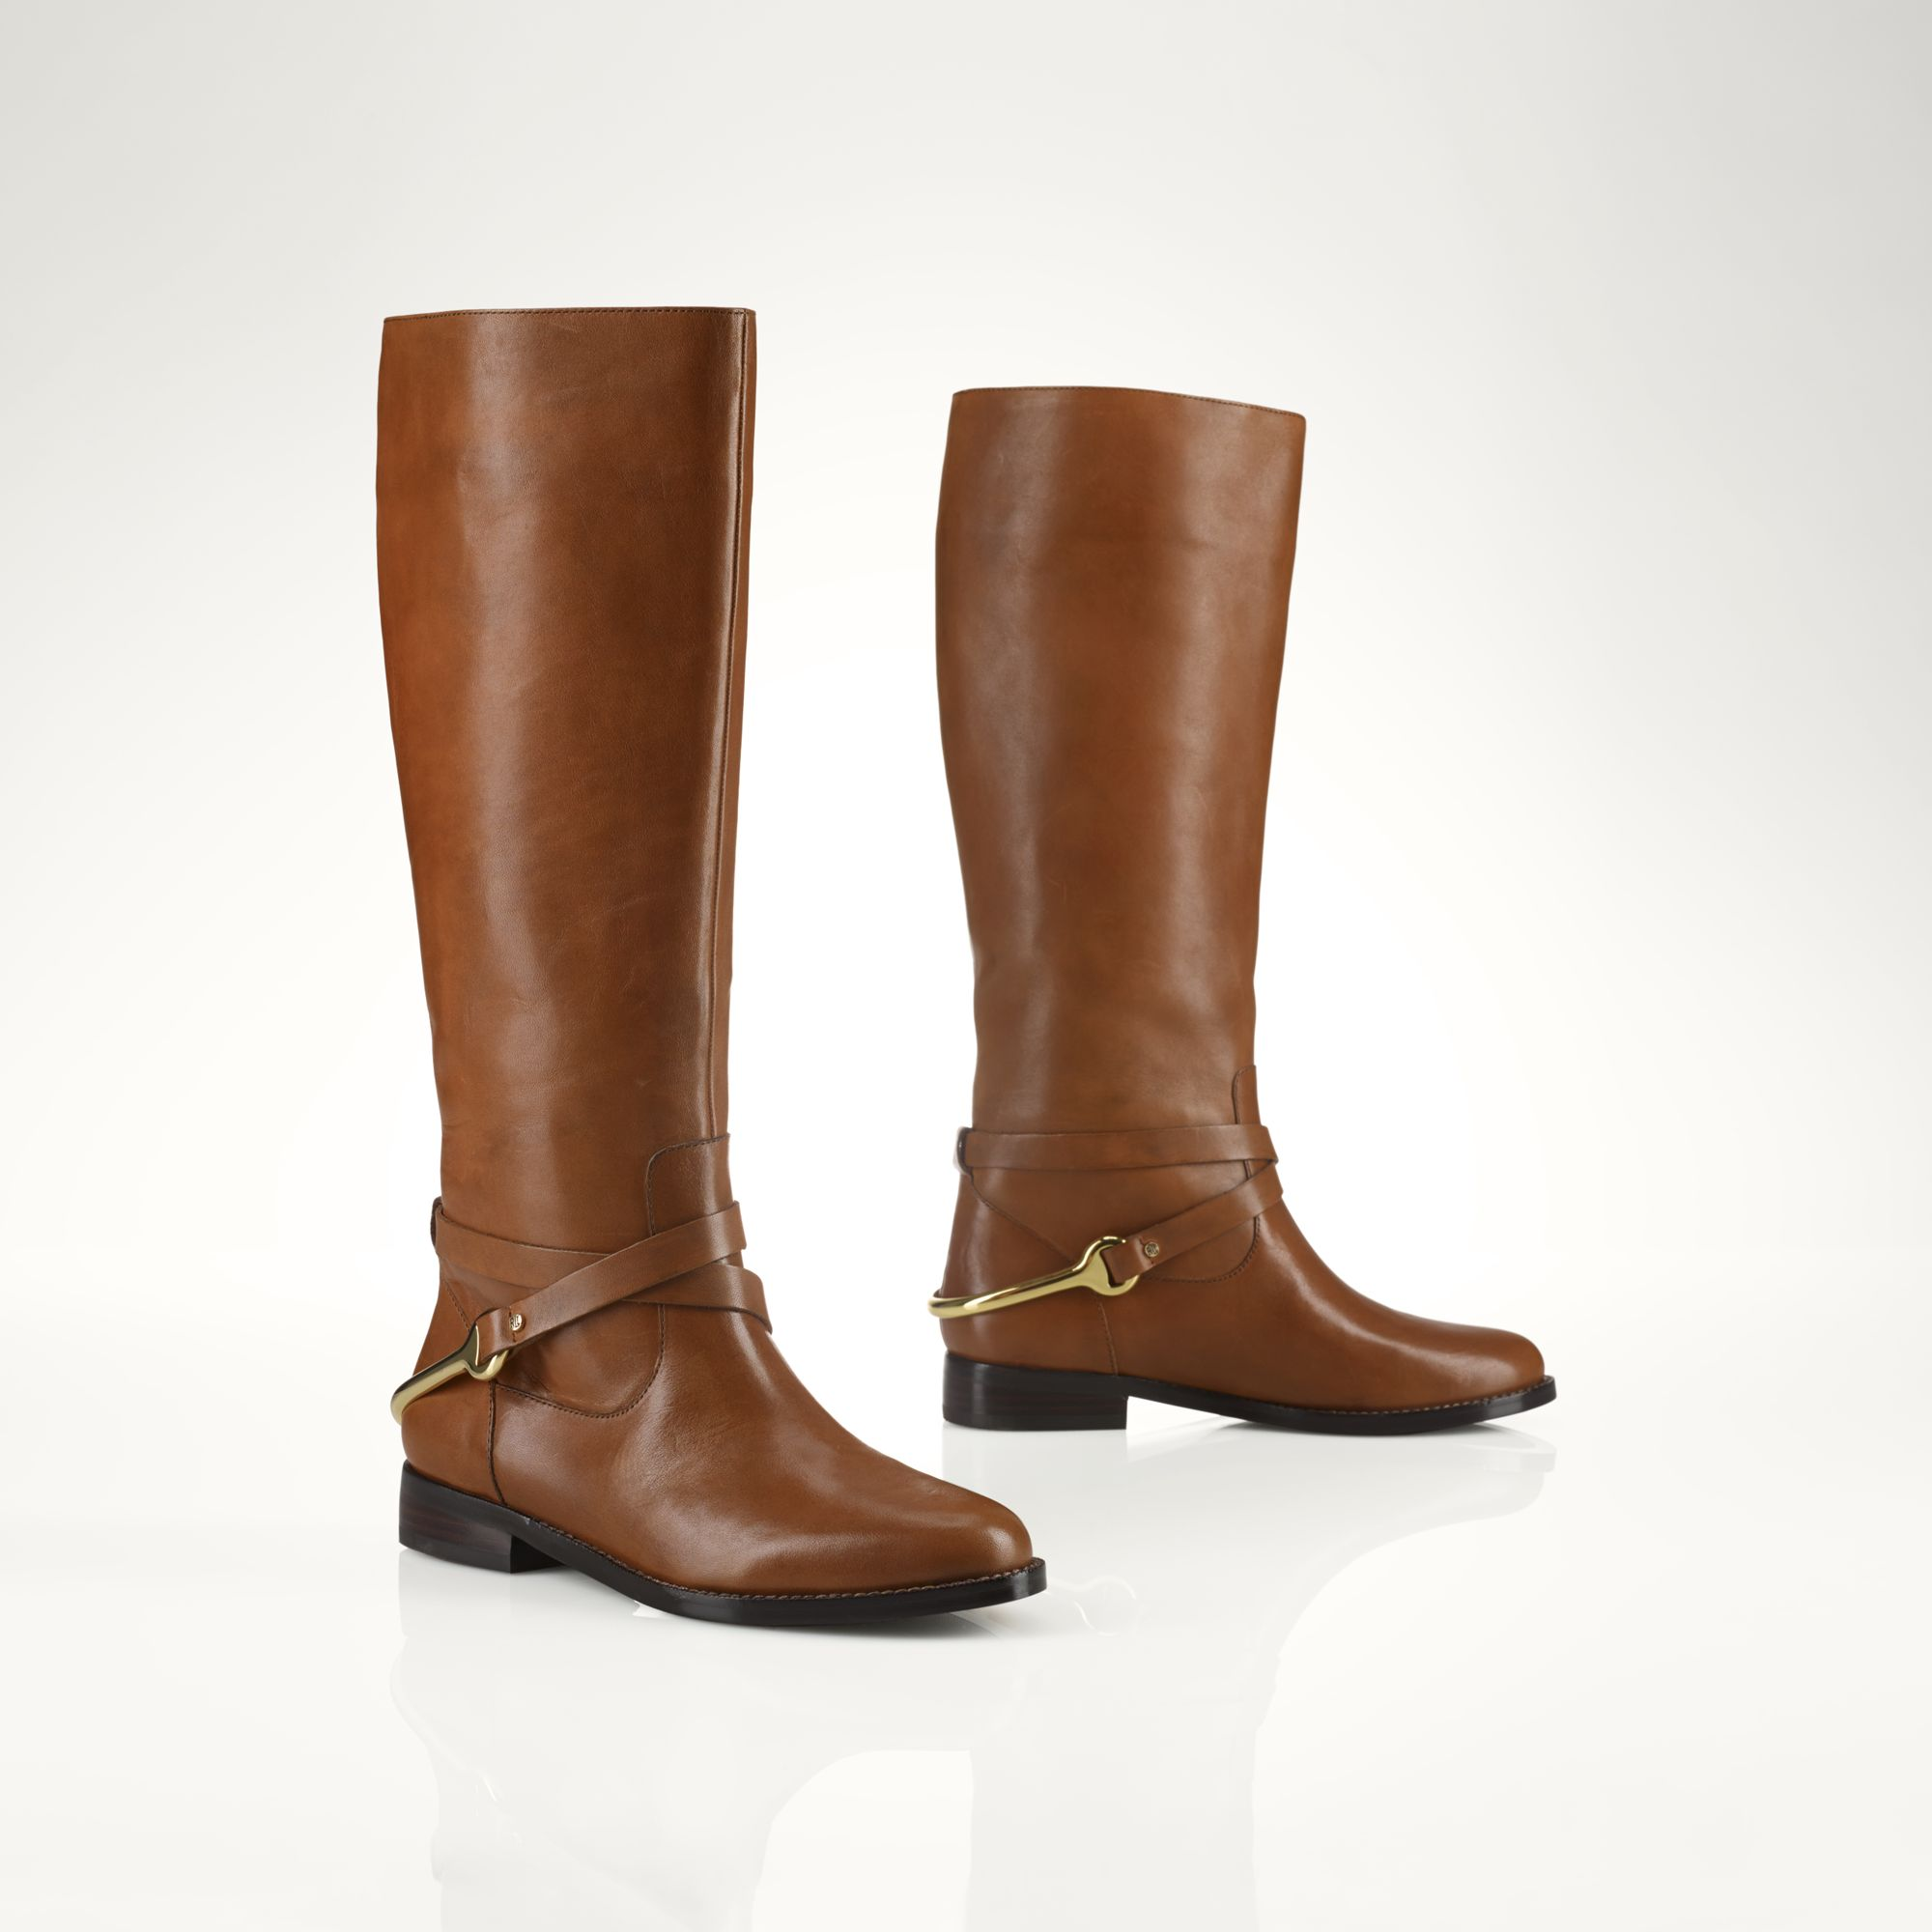 Popular Dublin Eskimo Horse Riding Boots Womens Waterproof Winter Country